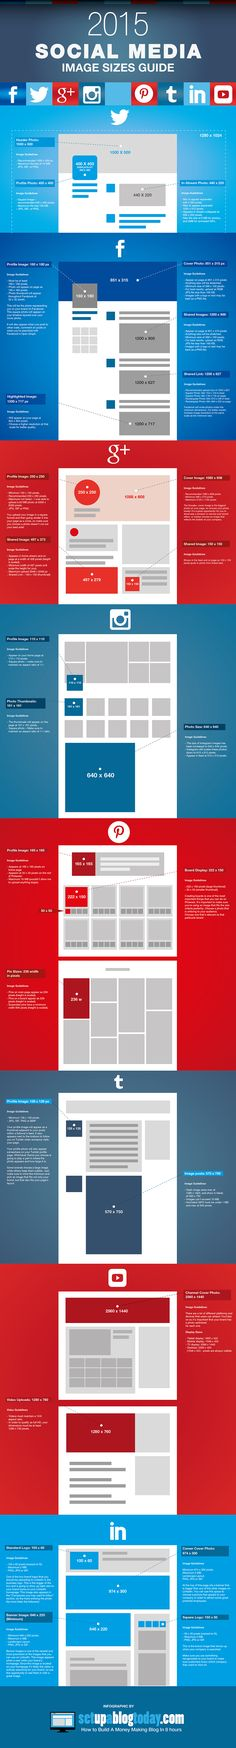 From Facebook to Google+, this ‪#‎socialmedia‬ image size guide gives you the exact dimensions for the top 8 social networks! PLUS best practices and strategies. via http://rebekahradice.com/social-media-image-sizes/ via @RebekahRadice